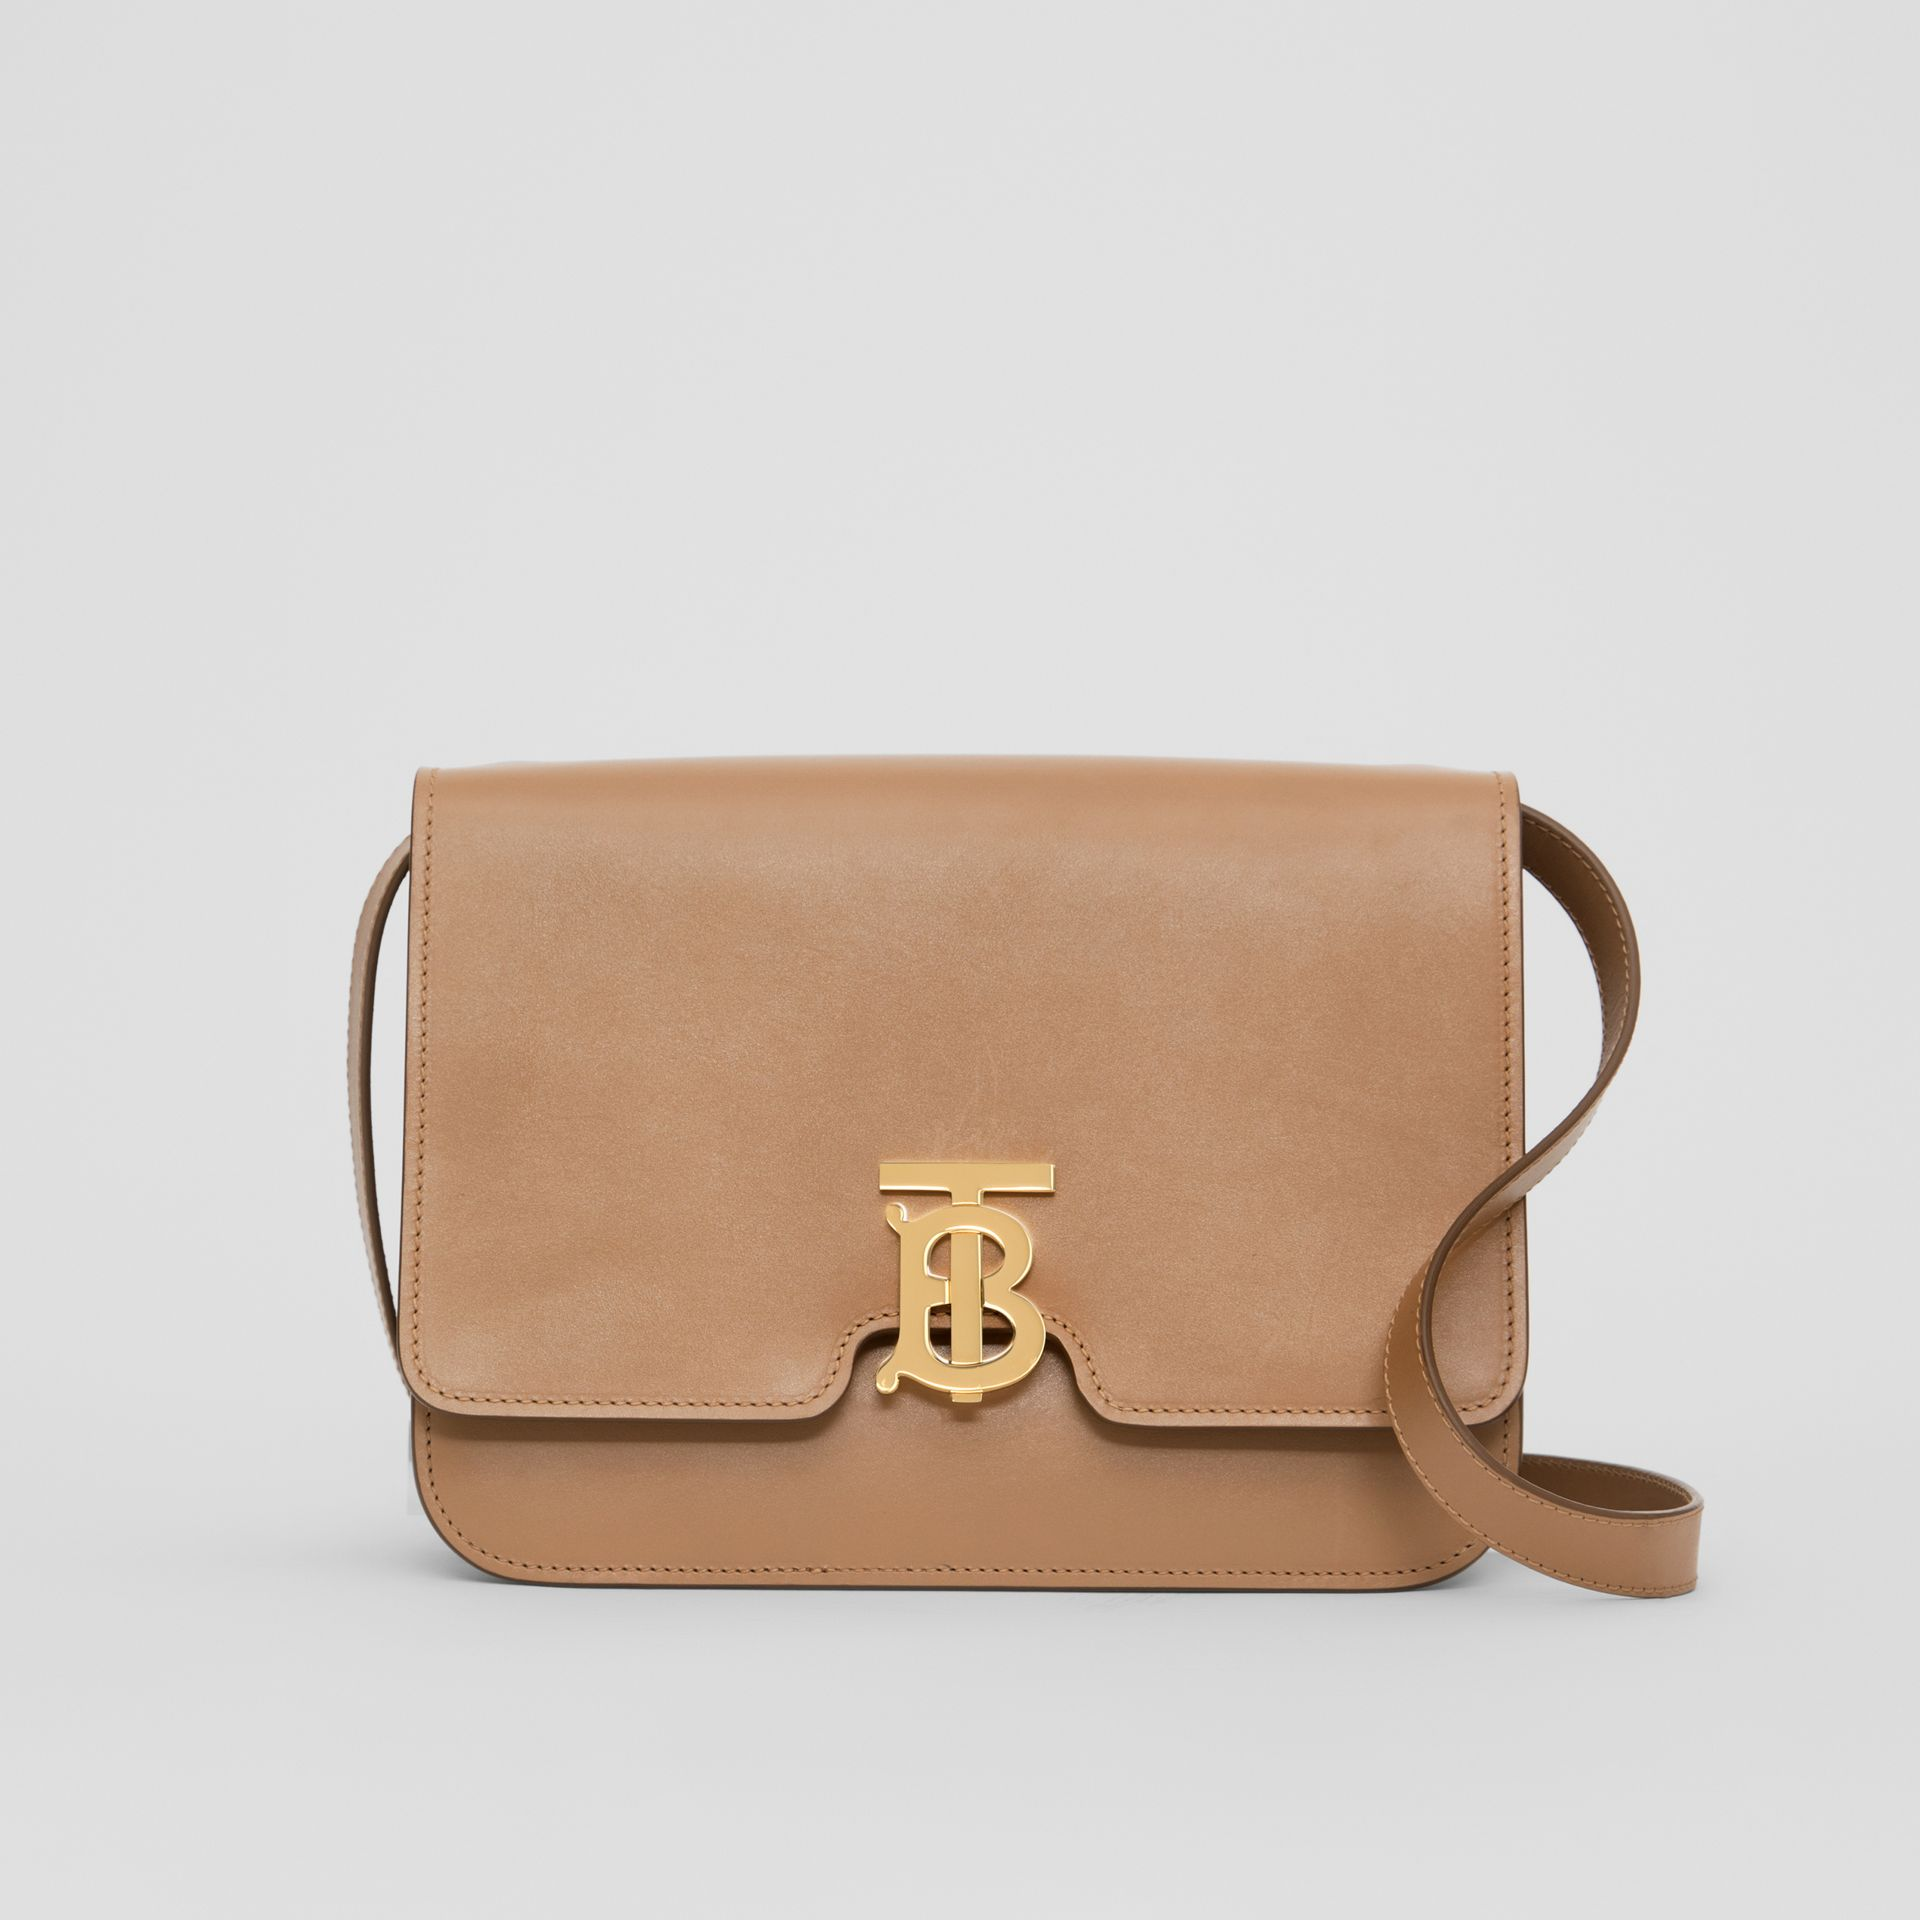 Medium Leather TB Bag in Light Camel - Women | Burberry Canada - gallery image 0